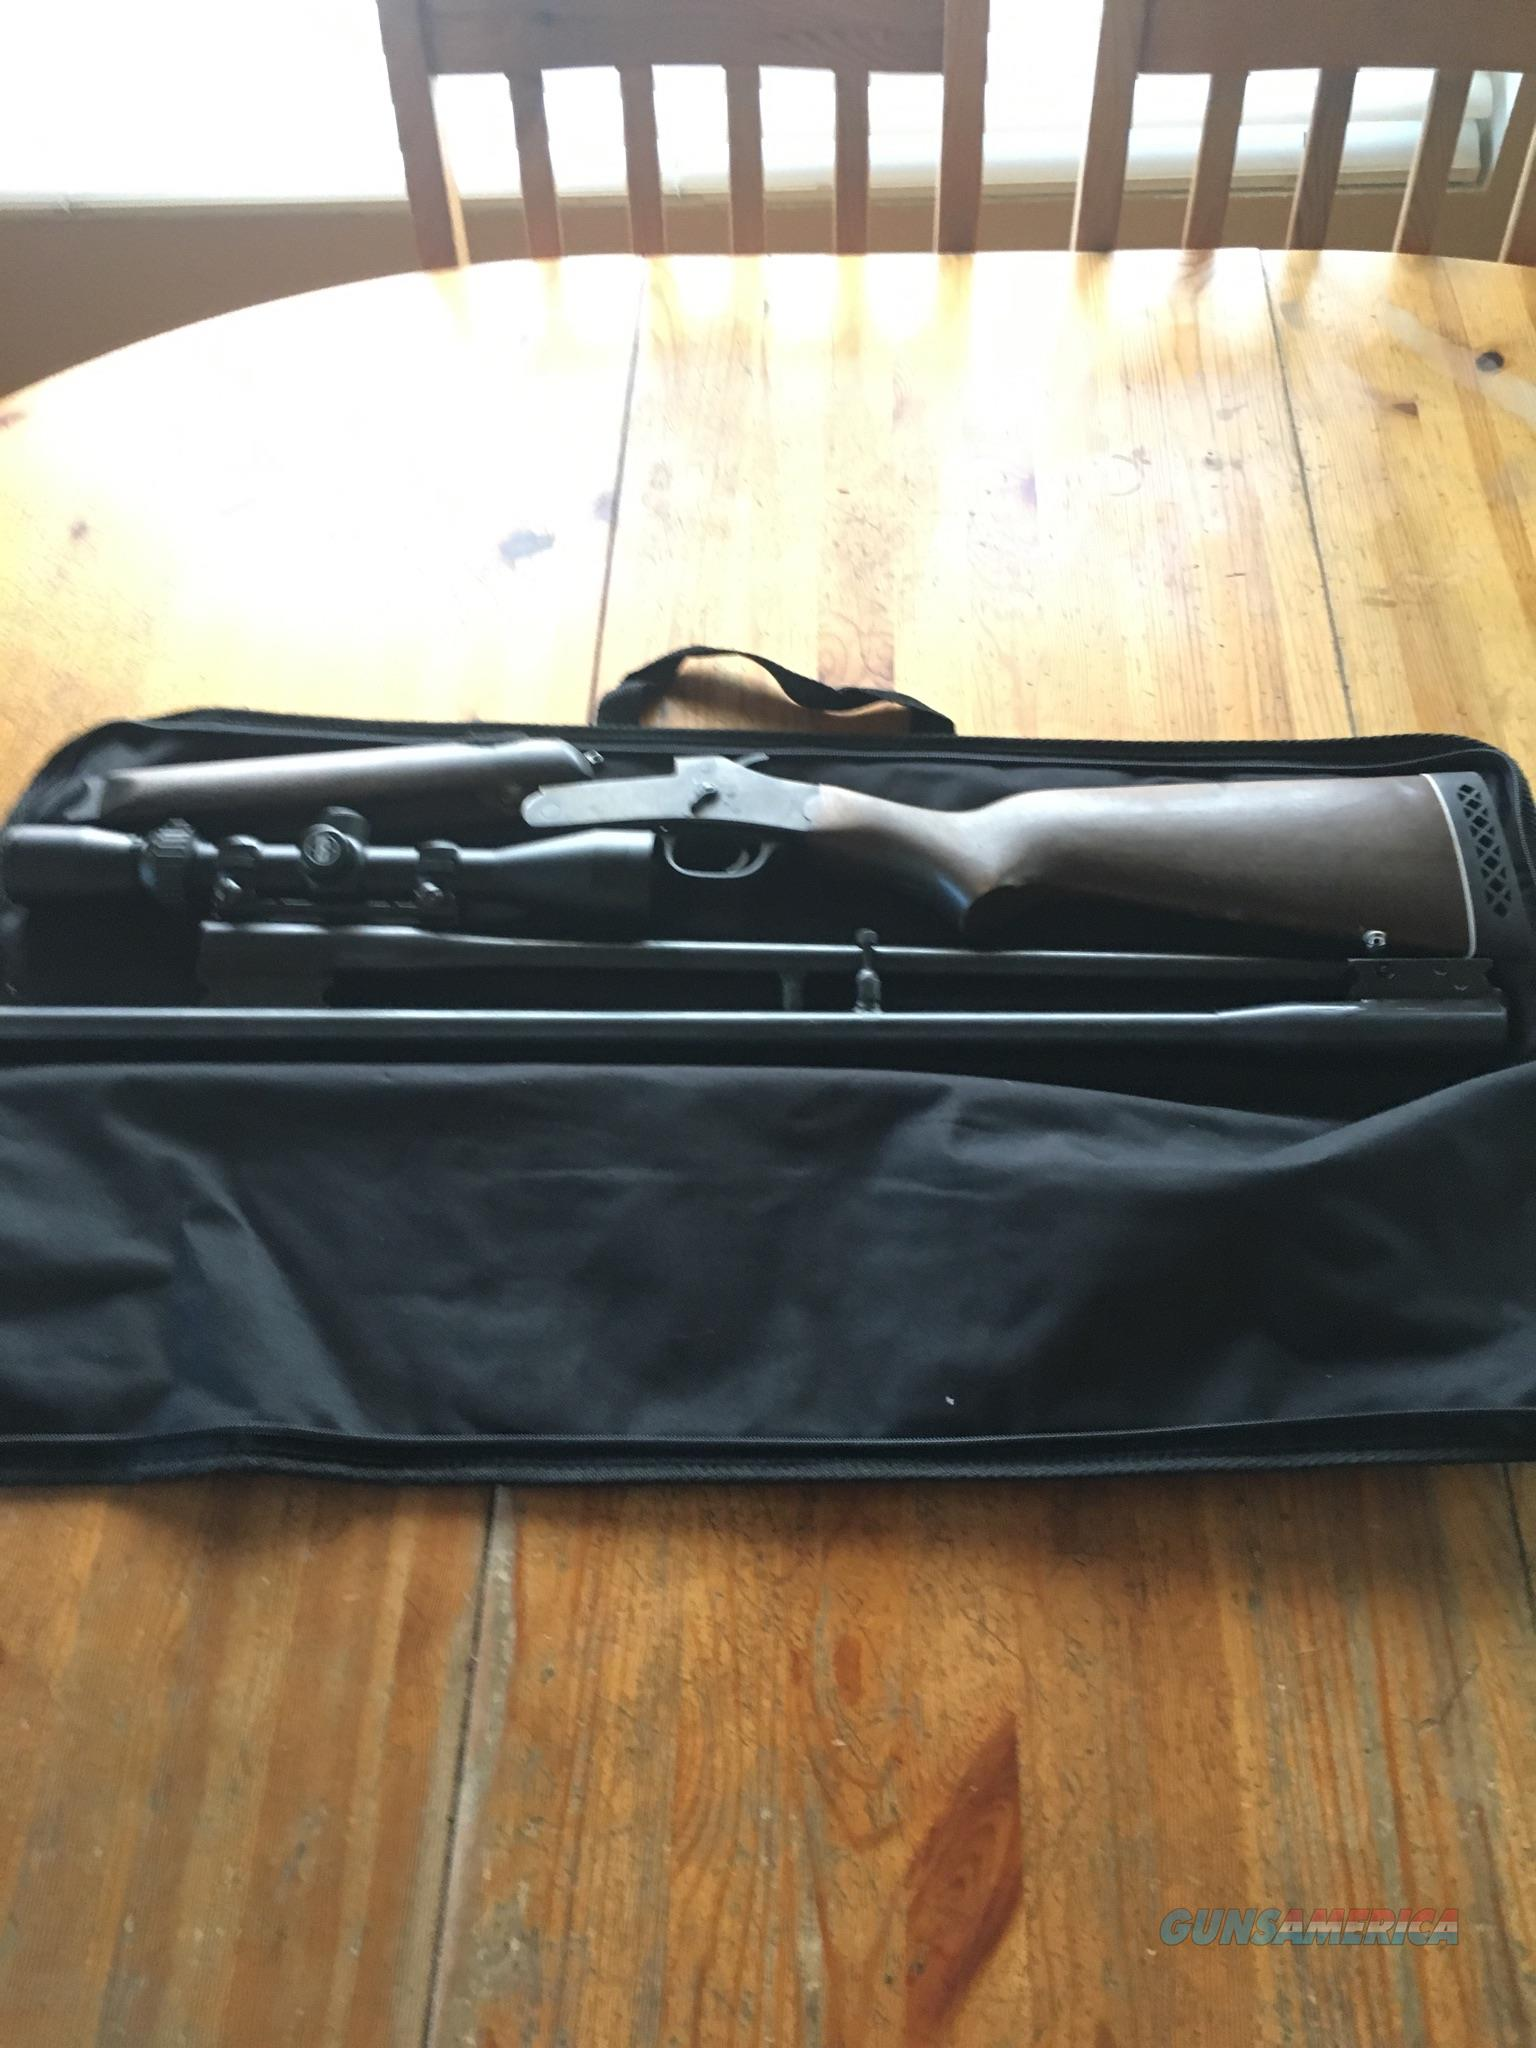 Rossi .243 /20 Ga. Combo with 3x9 scope  Guns > Rifles > Rossi Rifles > Other